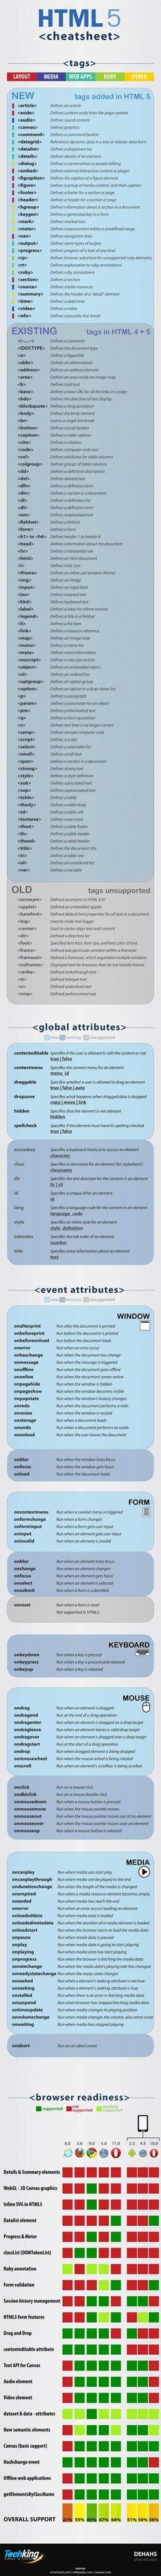 HTML 5 Cheat Sheet. Tailor-made IT Systems. Opus Online.